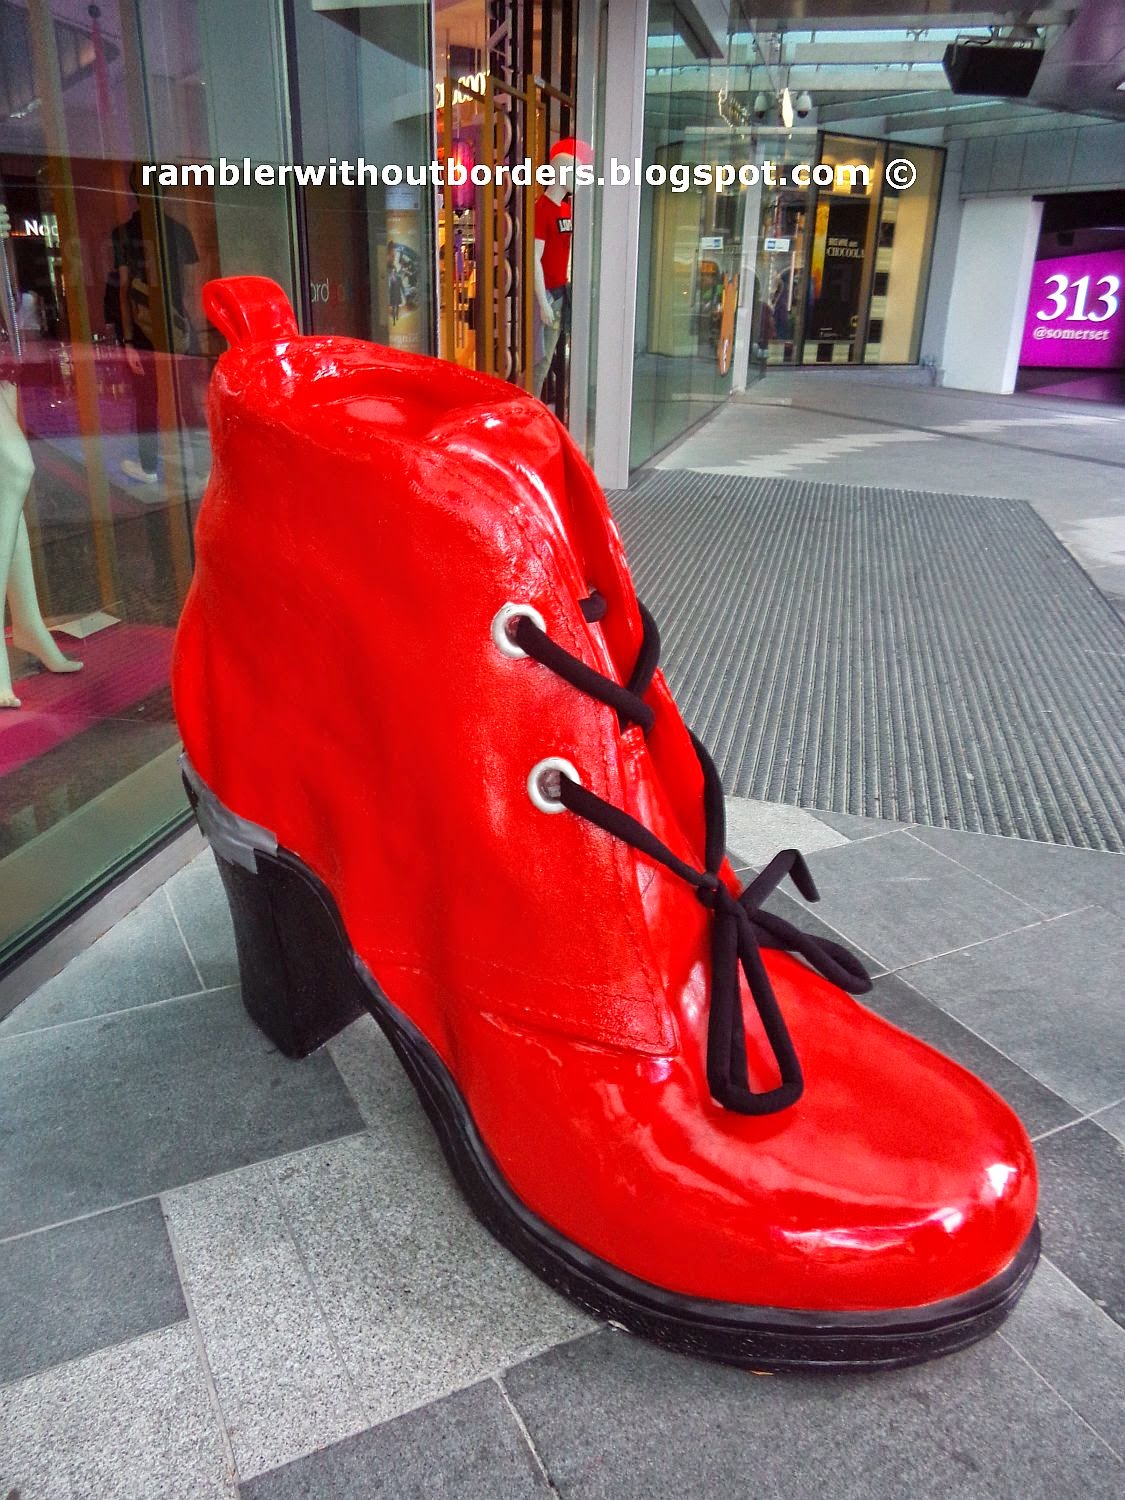 The Red Shoe outside the Orchard Road entrance, Orchard Gateway, Singapore